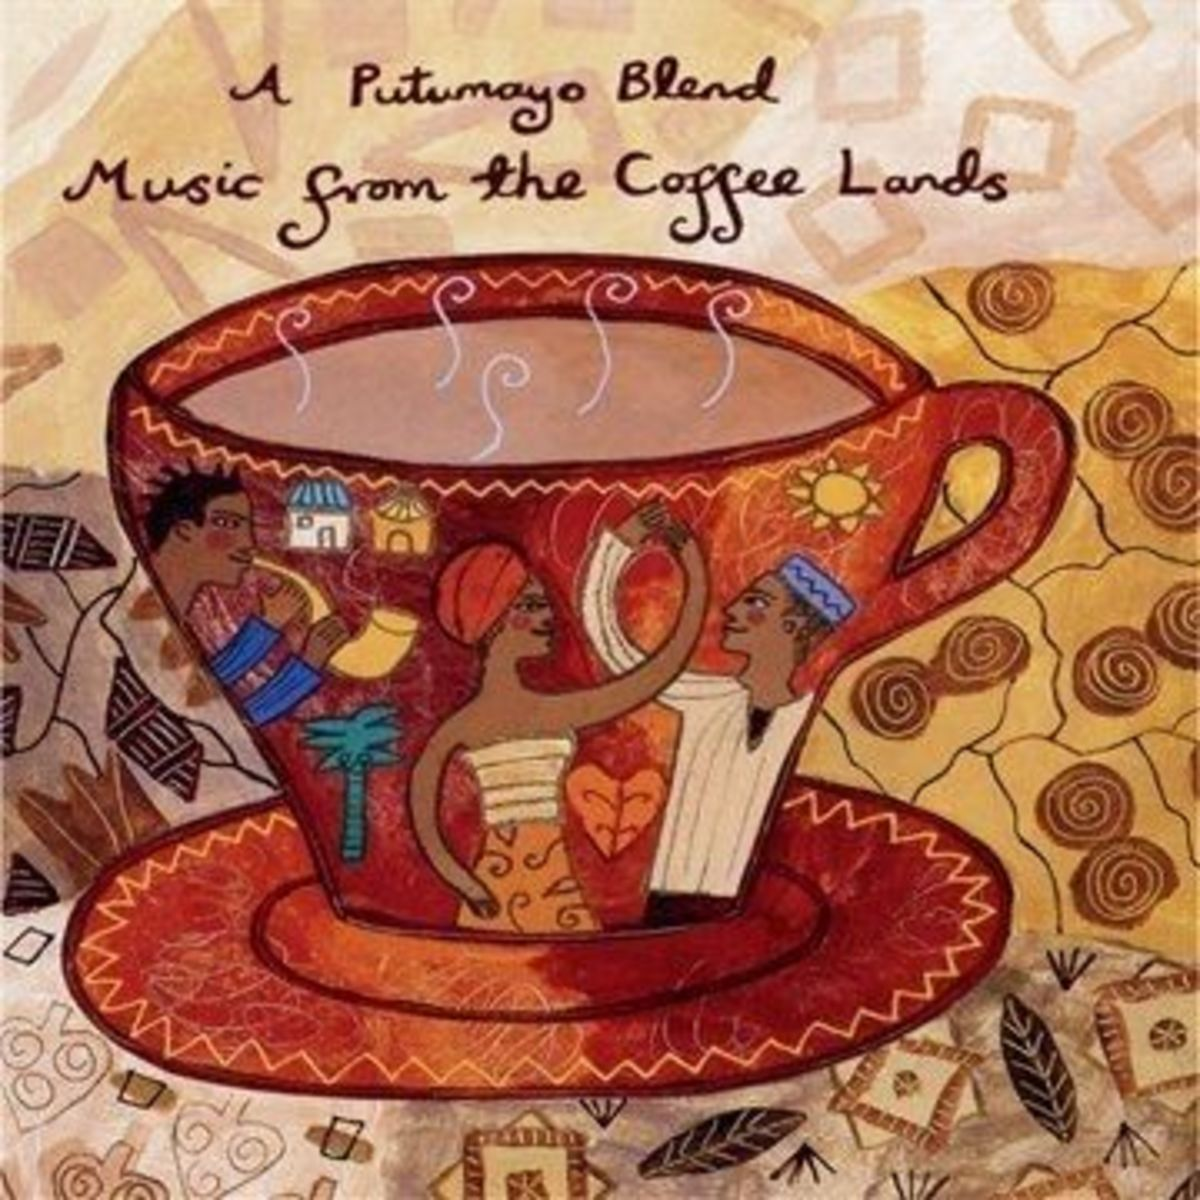 This Is A CD From Places Coffee Comes From - Find it at Amazon.